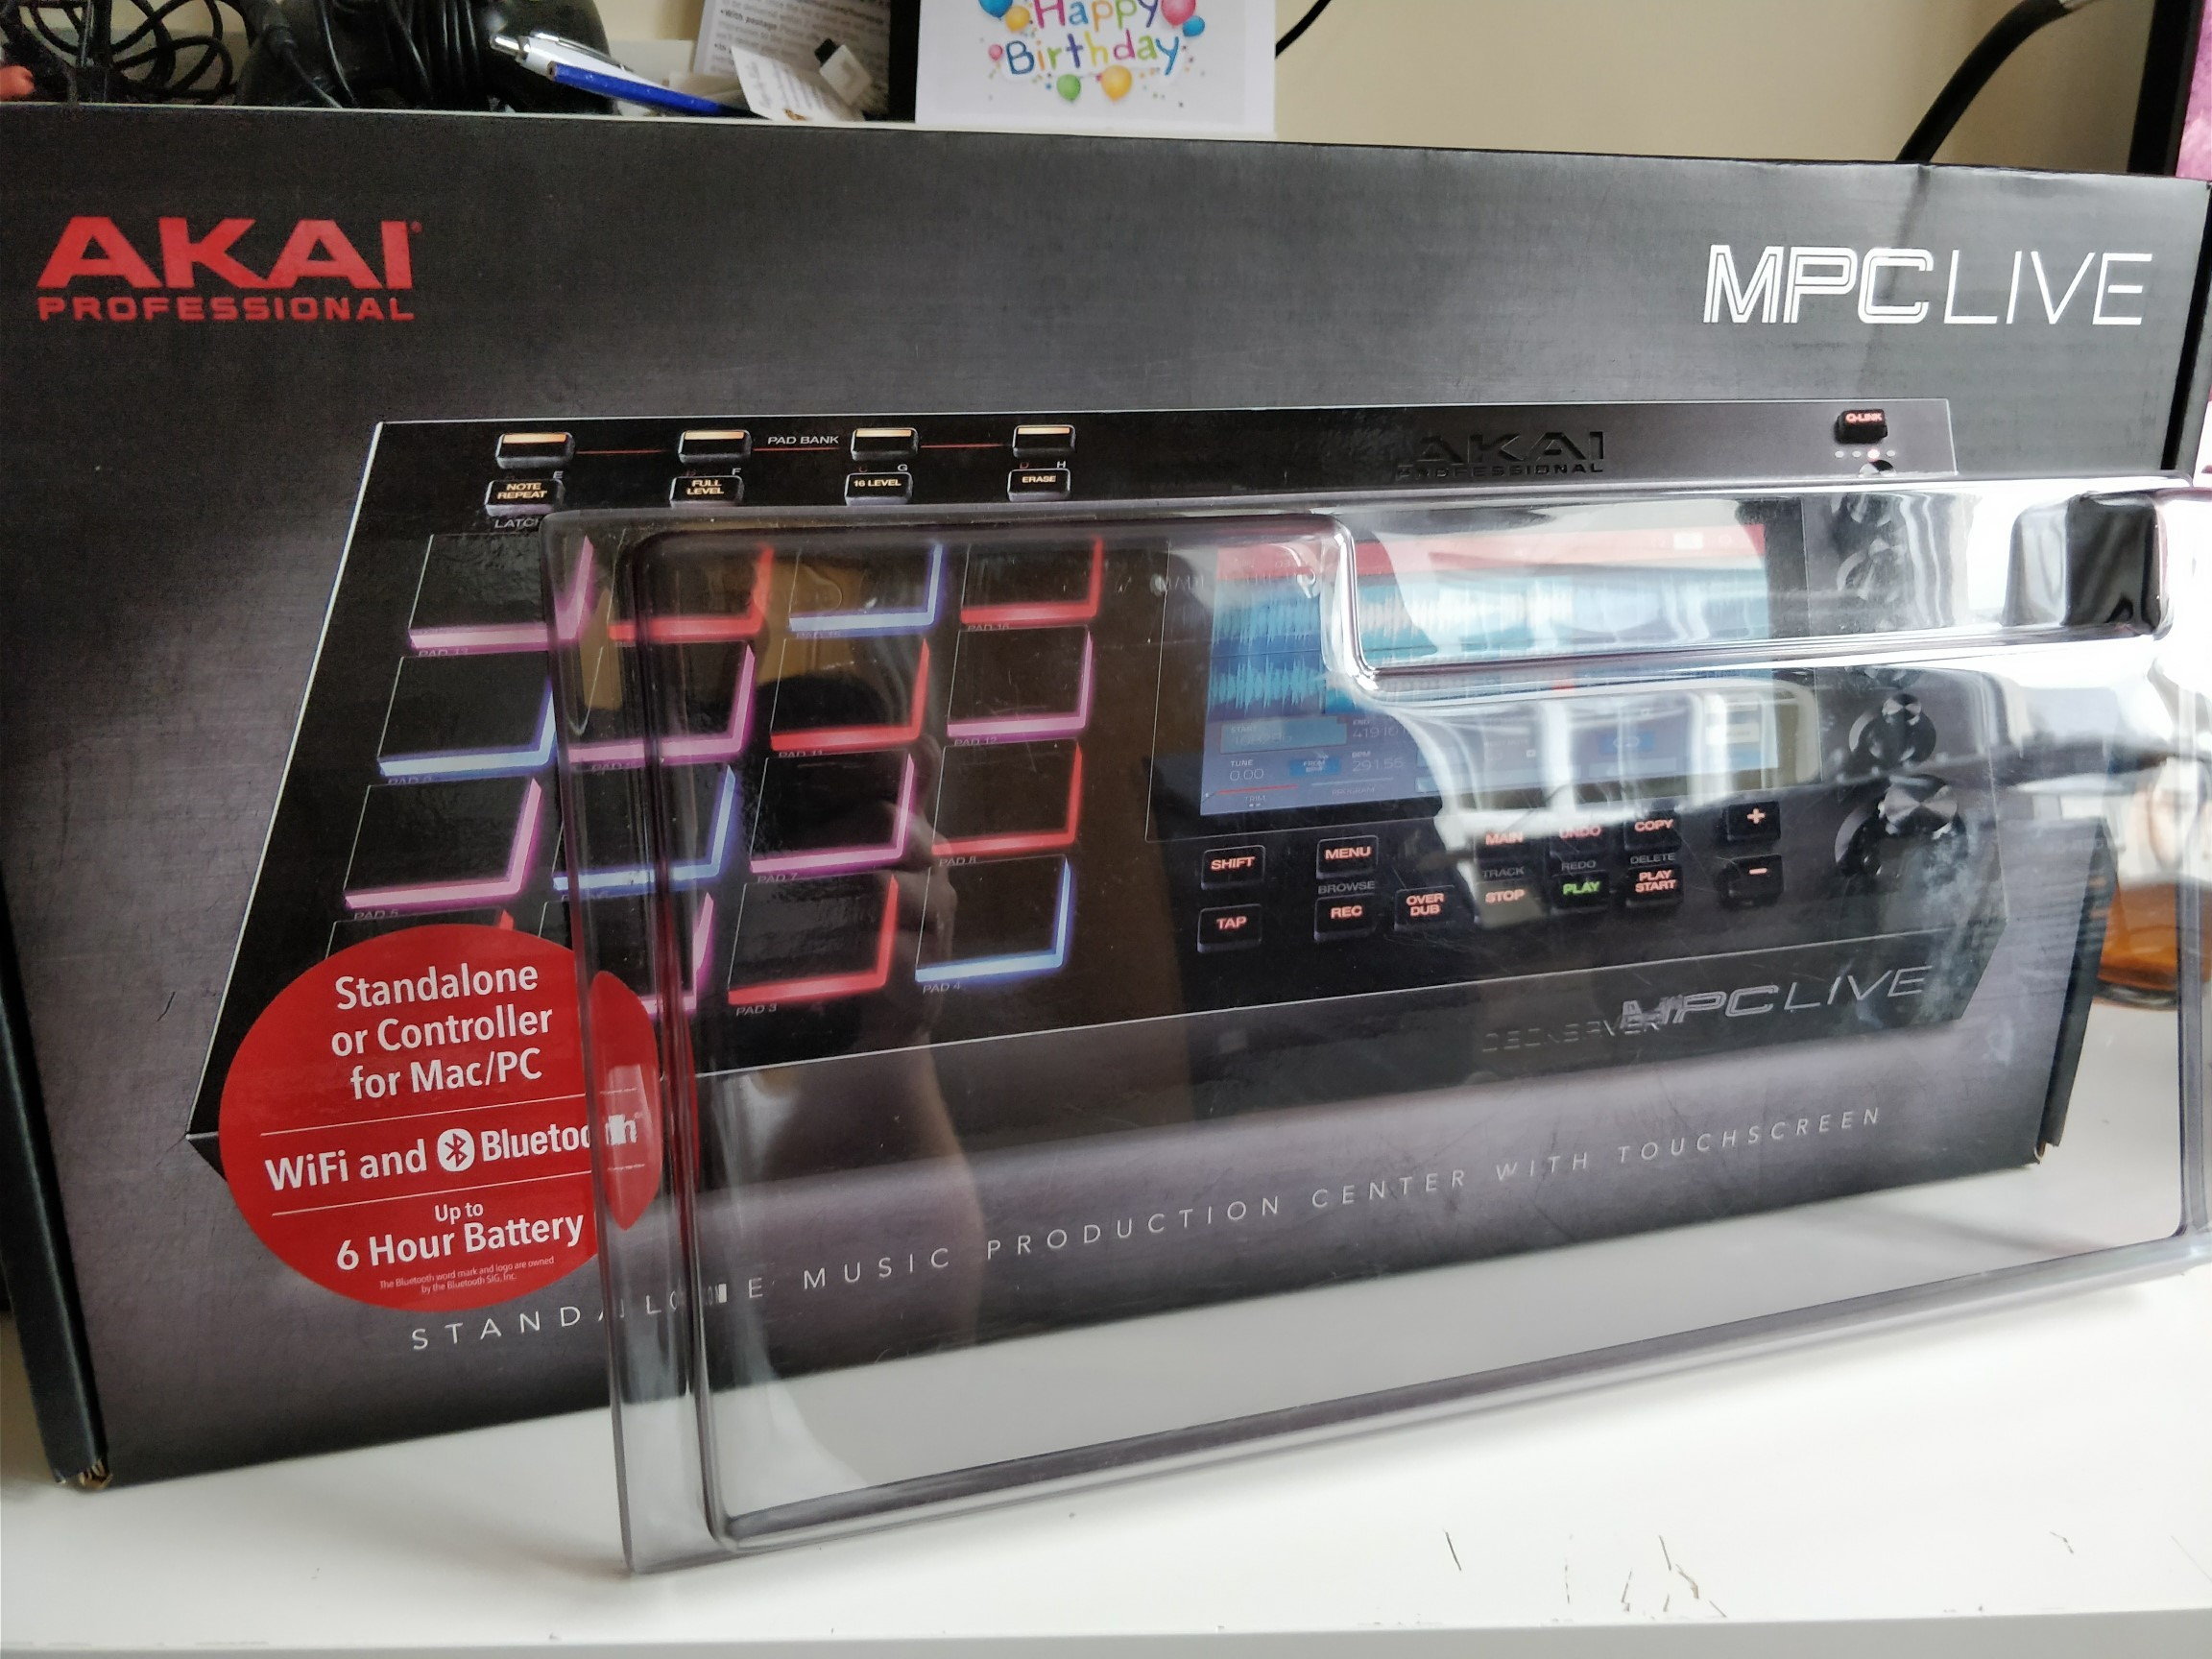 FS - MPC Live with decksaver £769 - Marketplace - Sell